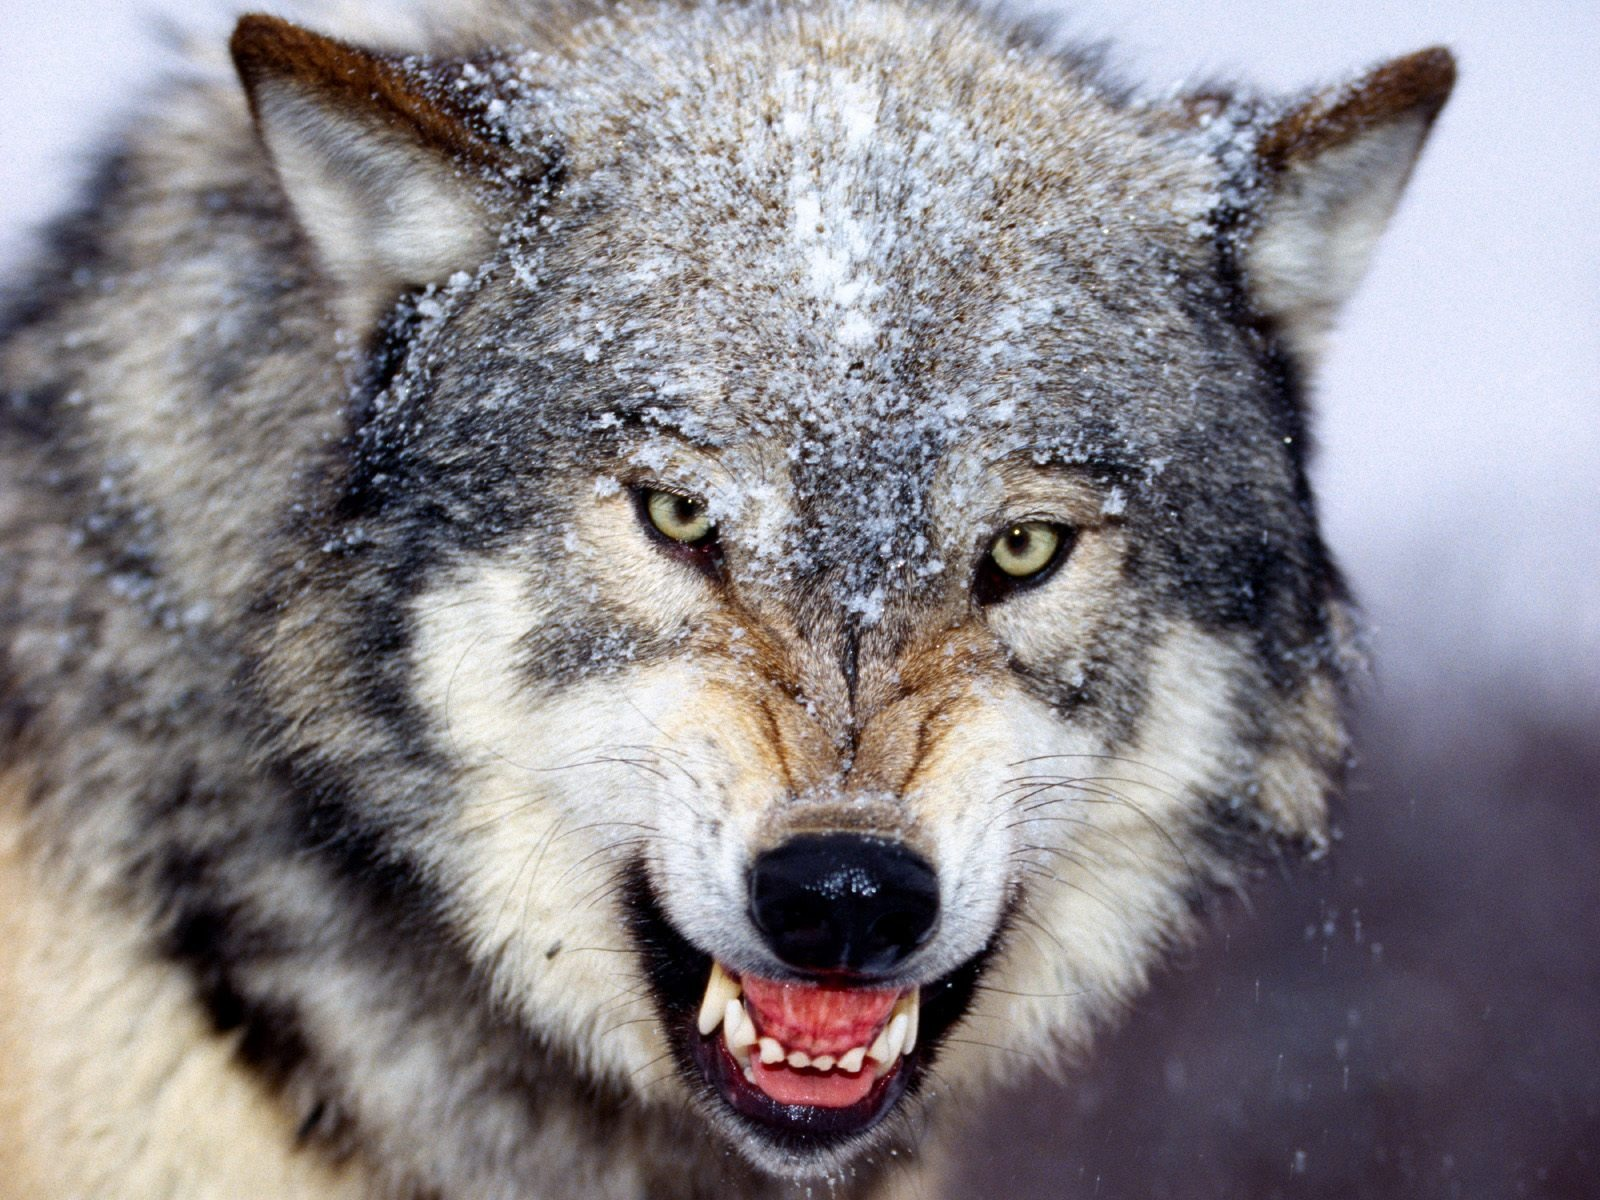 wolf wallpaper free download  Snarling Gray Wolf Wallpaper Wolves Animals Wallpapers in jpg format ...